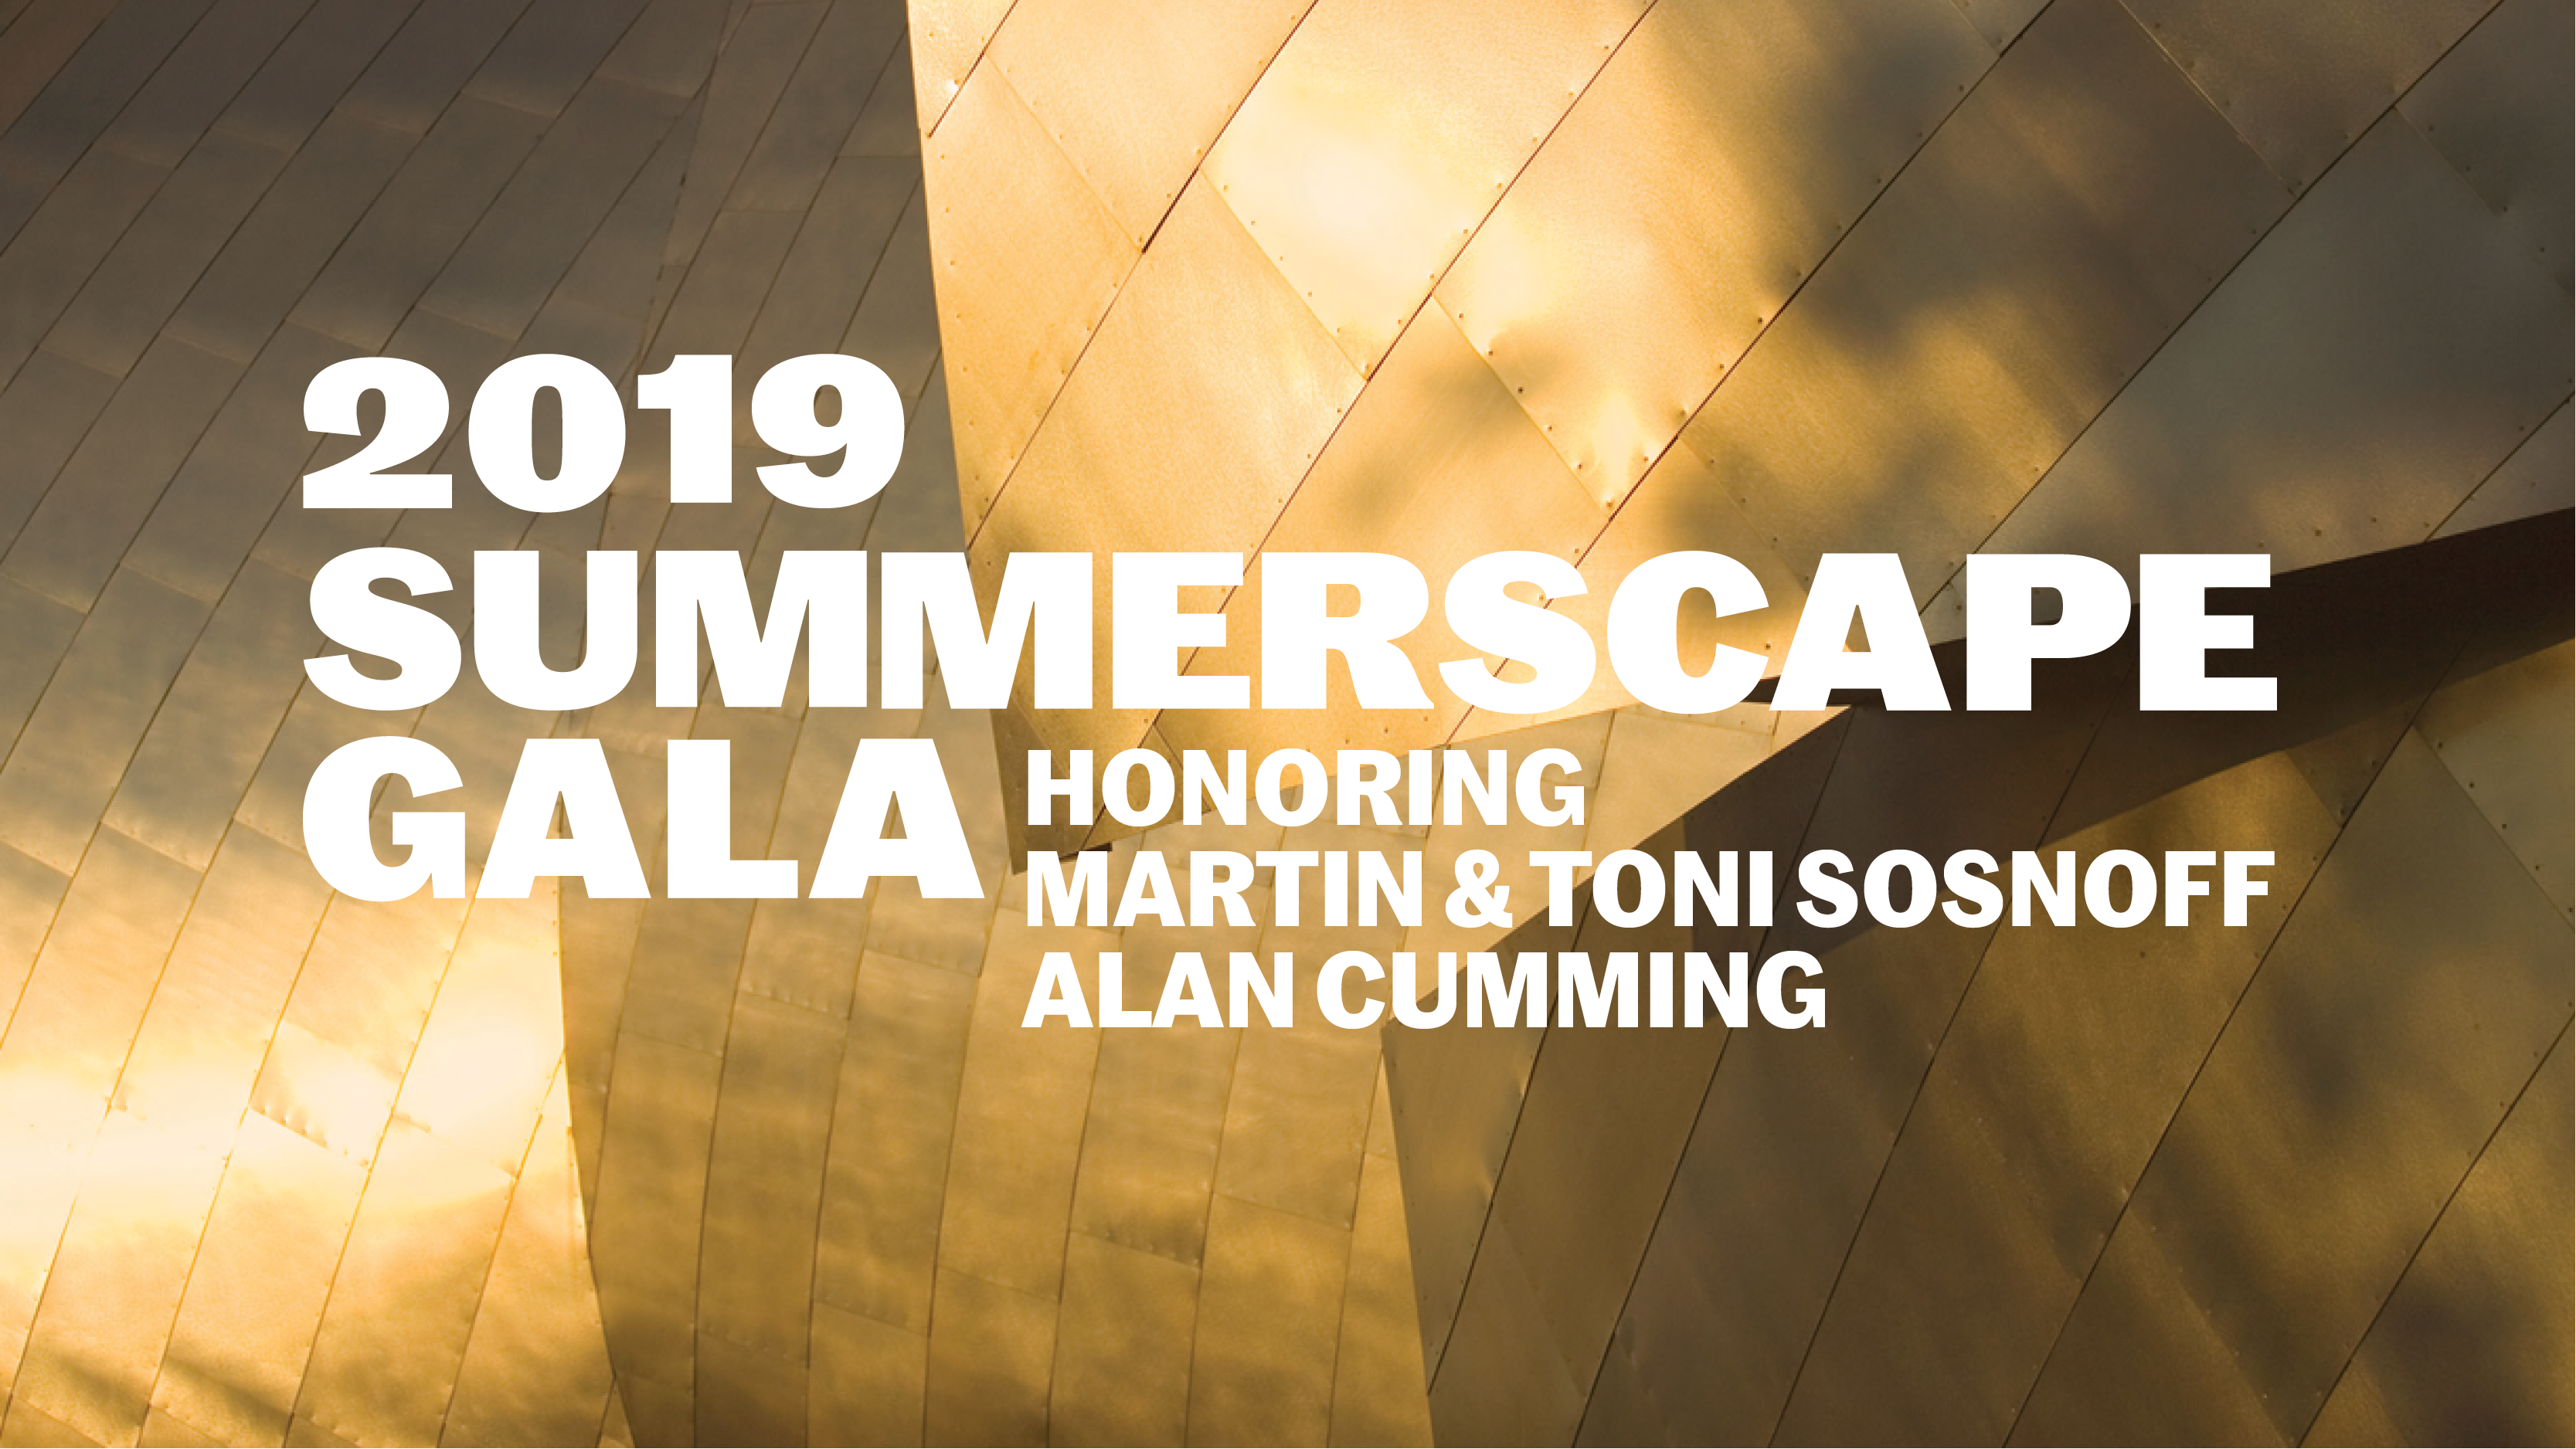 [SummerScape Gala 2019]